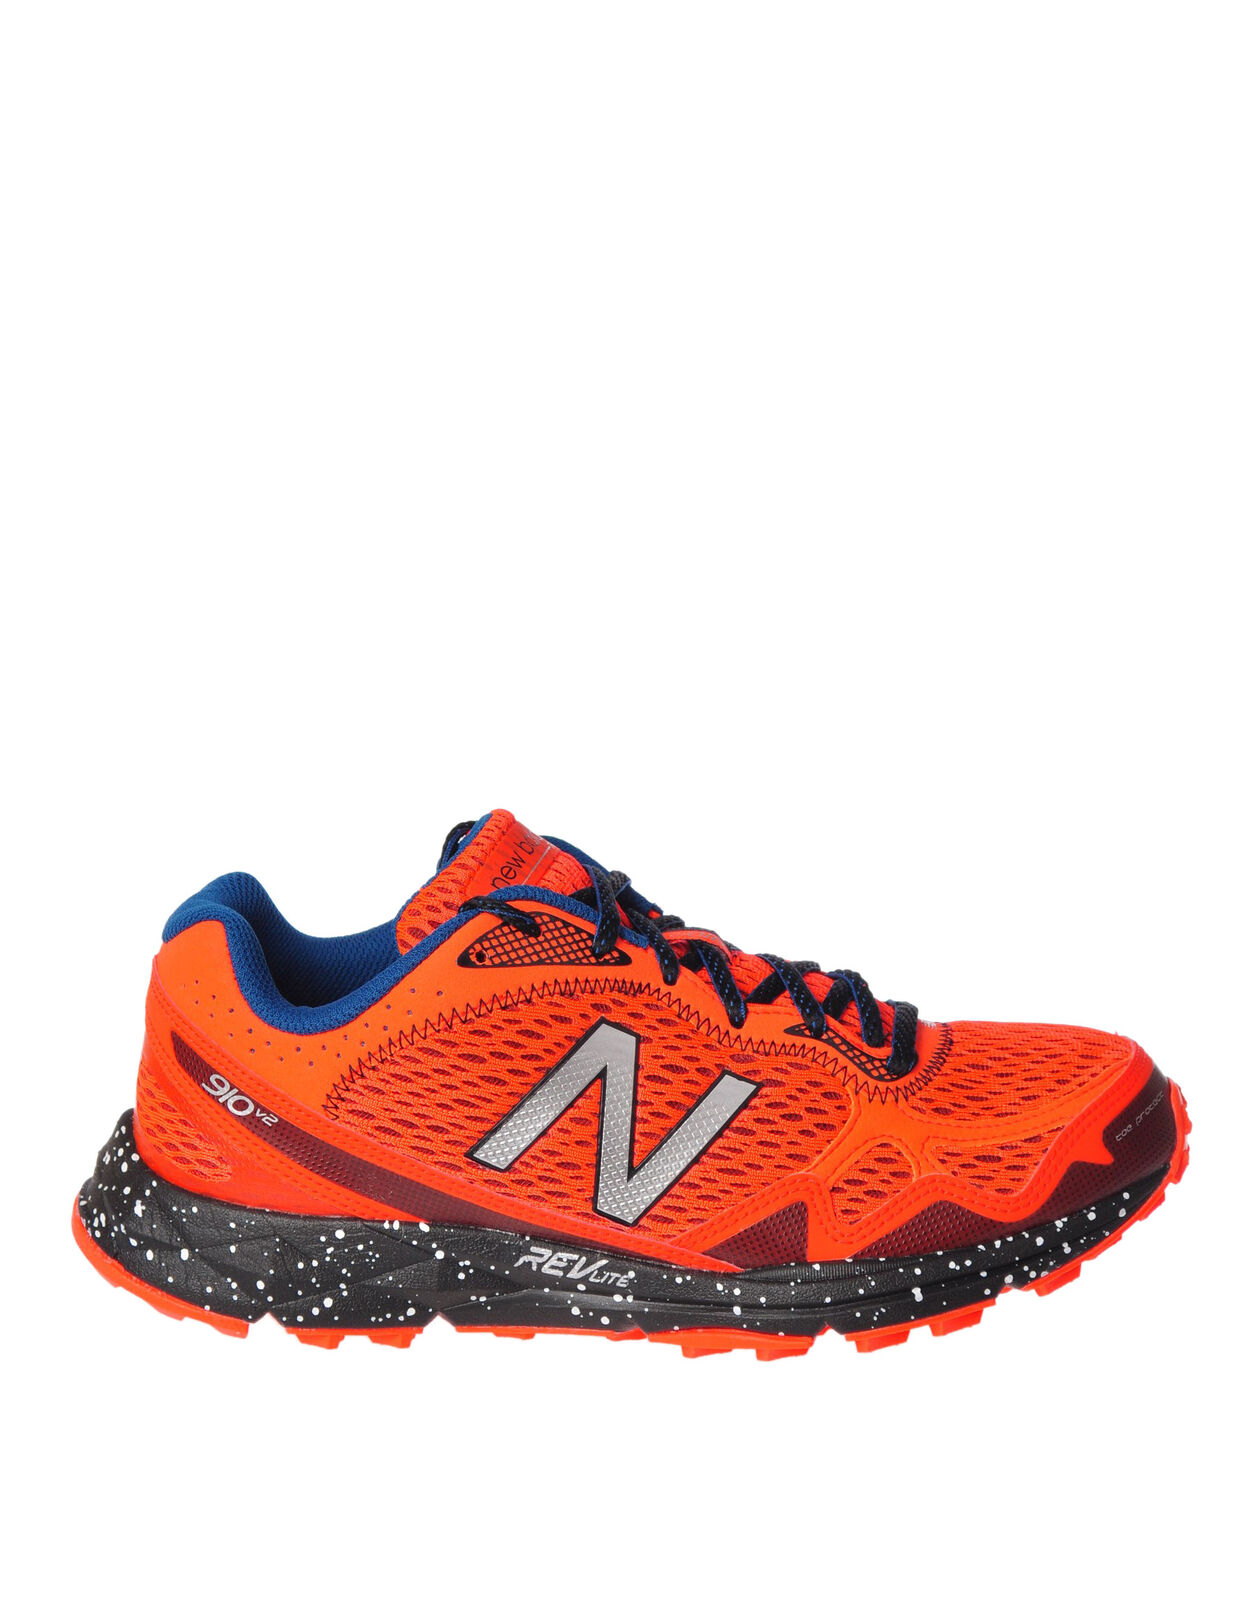 New Balance - zapatos-zapatillas low - Man - rojo - 454915C184639